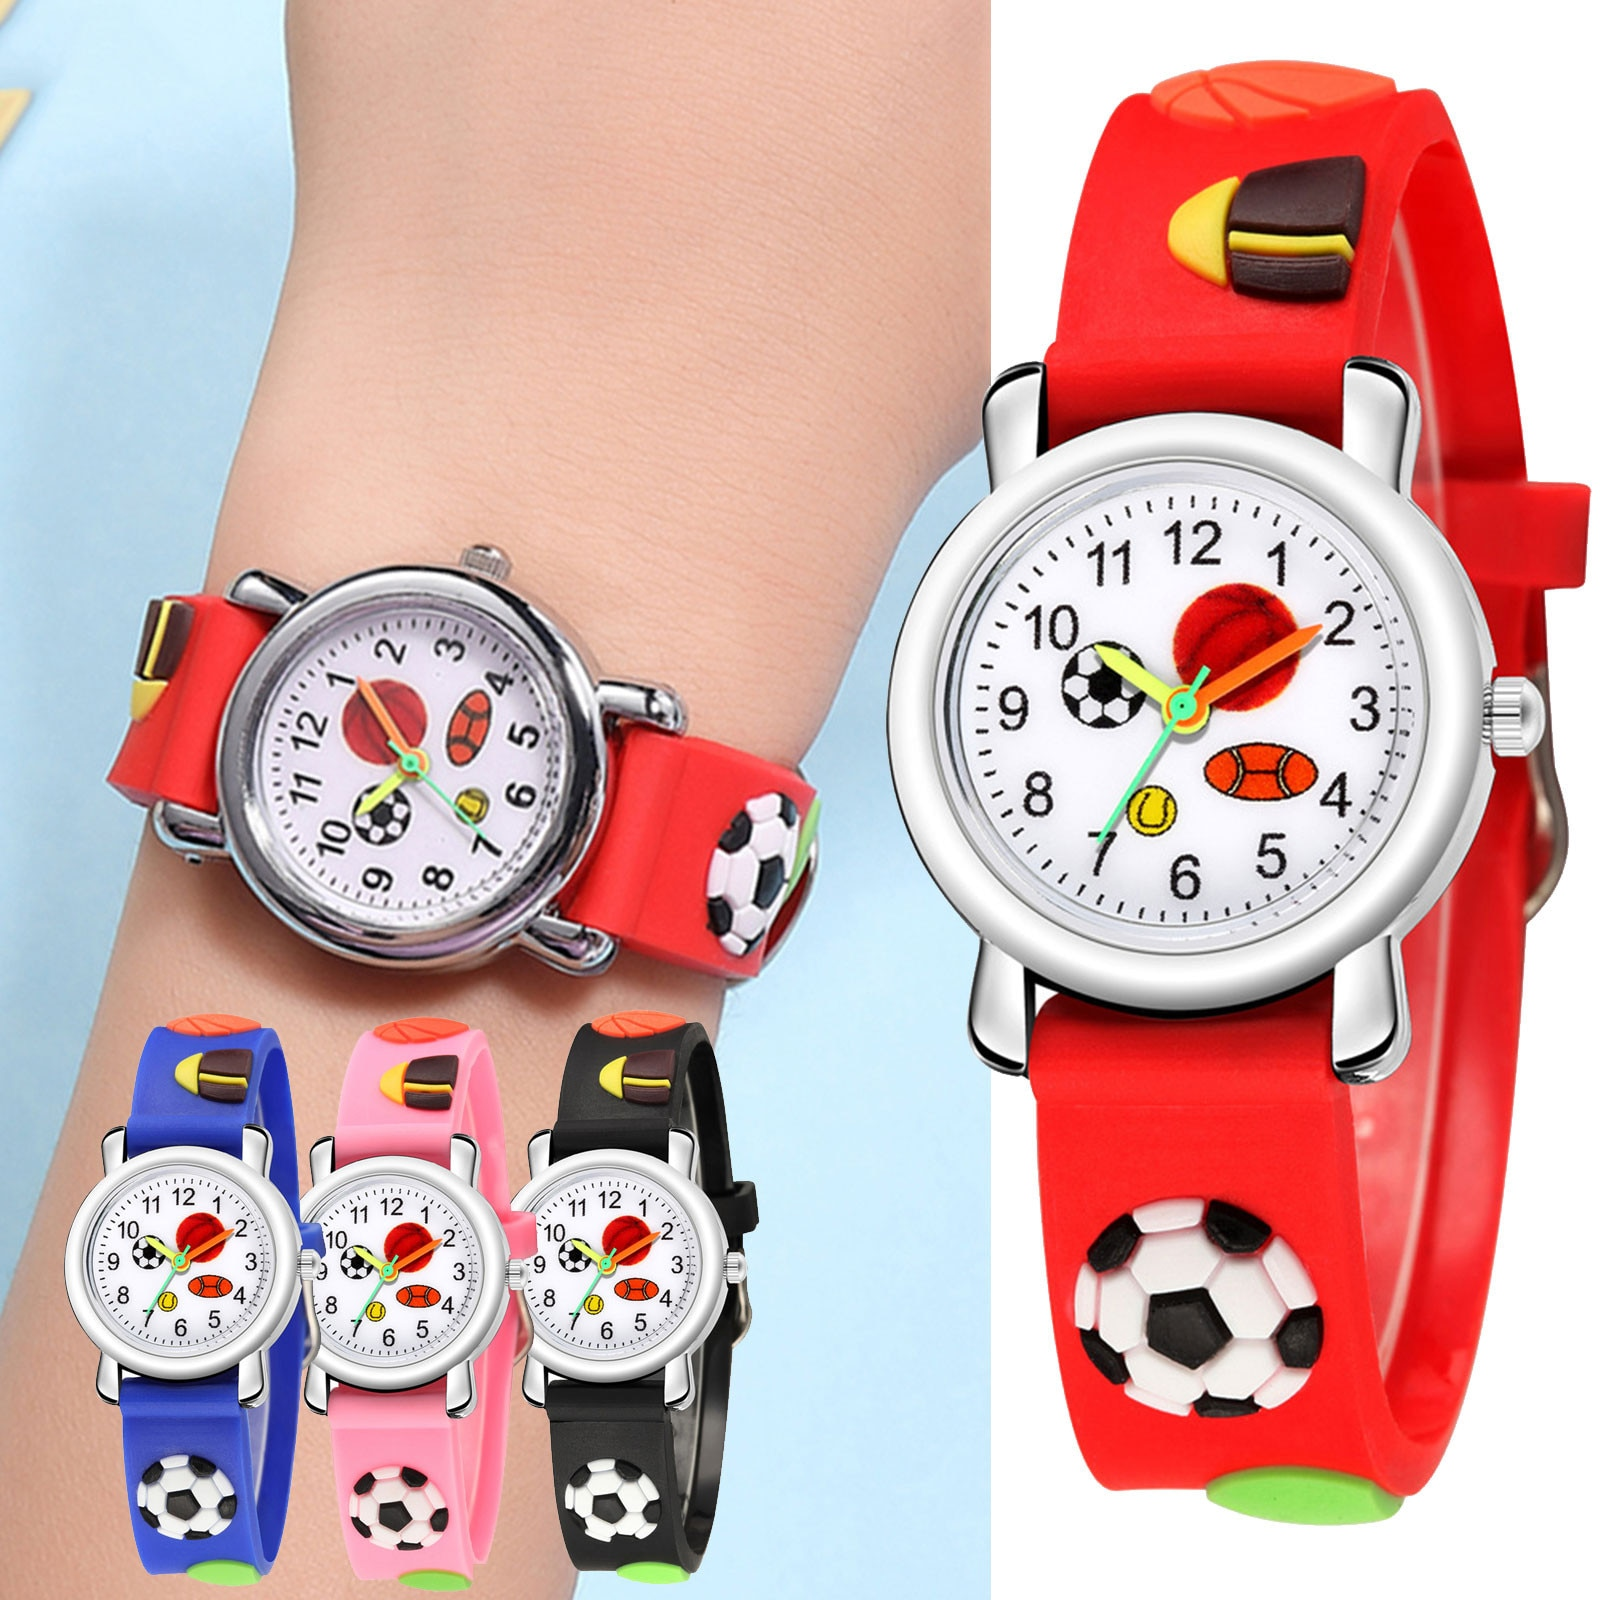 Children Cartoon Wristwatch Orologio Bimbi Watch Silicone Band Analog Dial Quartz Watches Kids Wrist